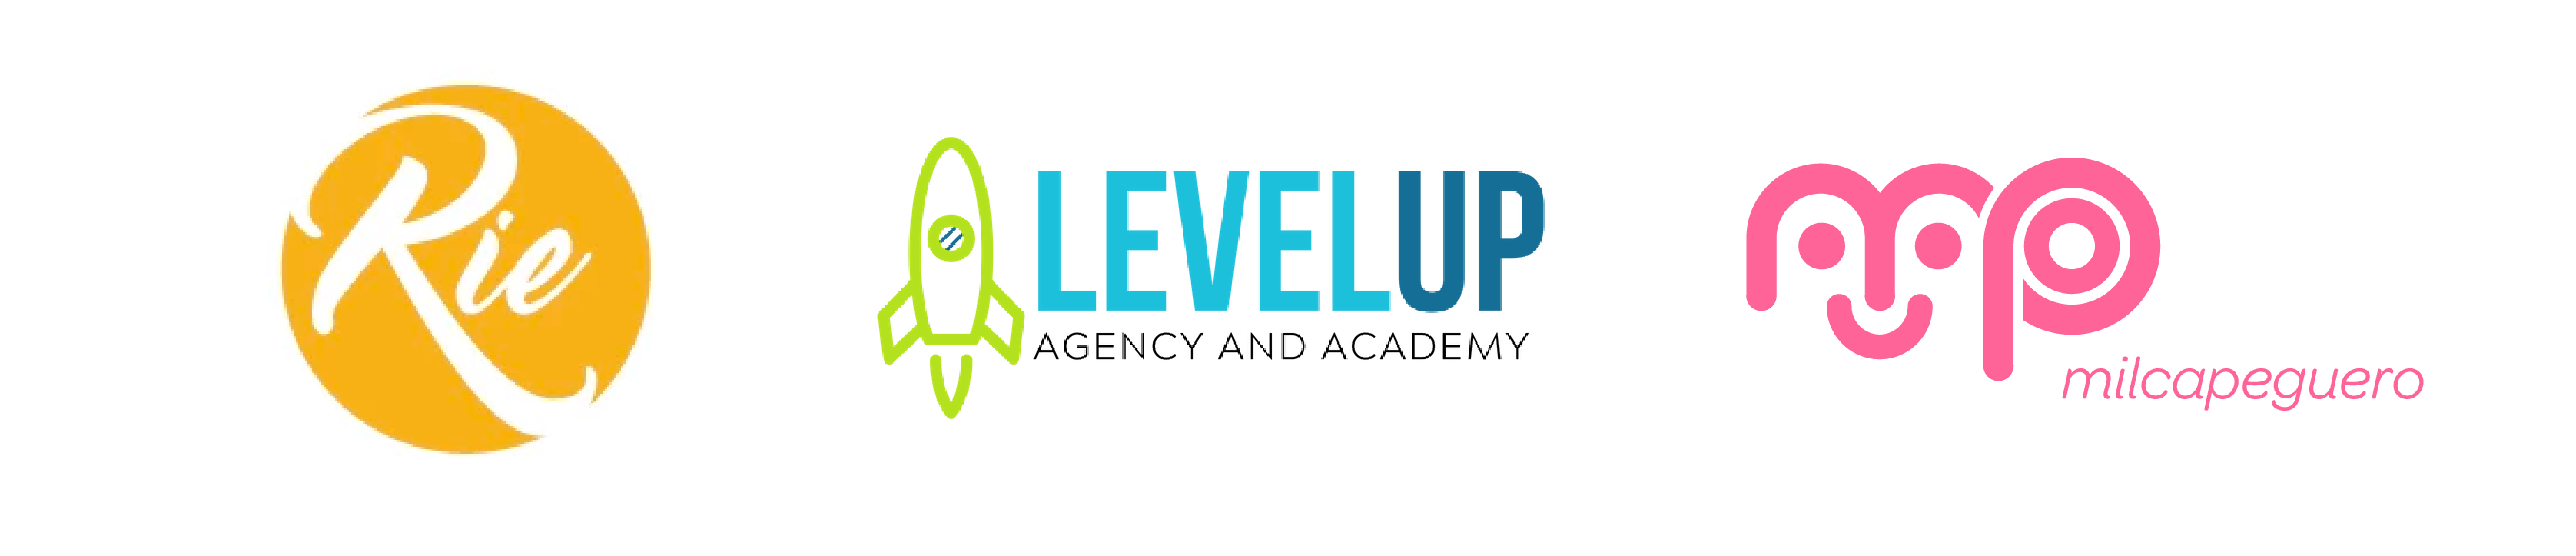 Logos Rie Levelup Milca | Email Marketing Boot Cam